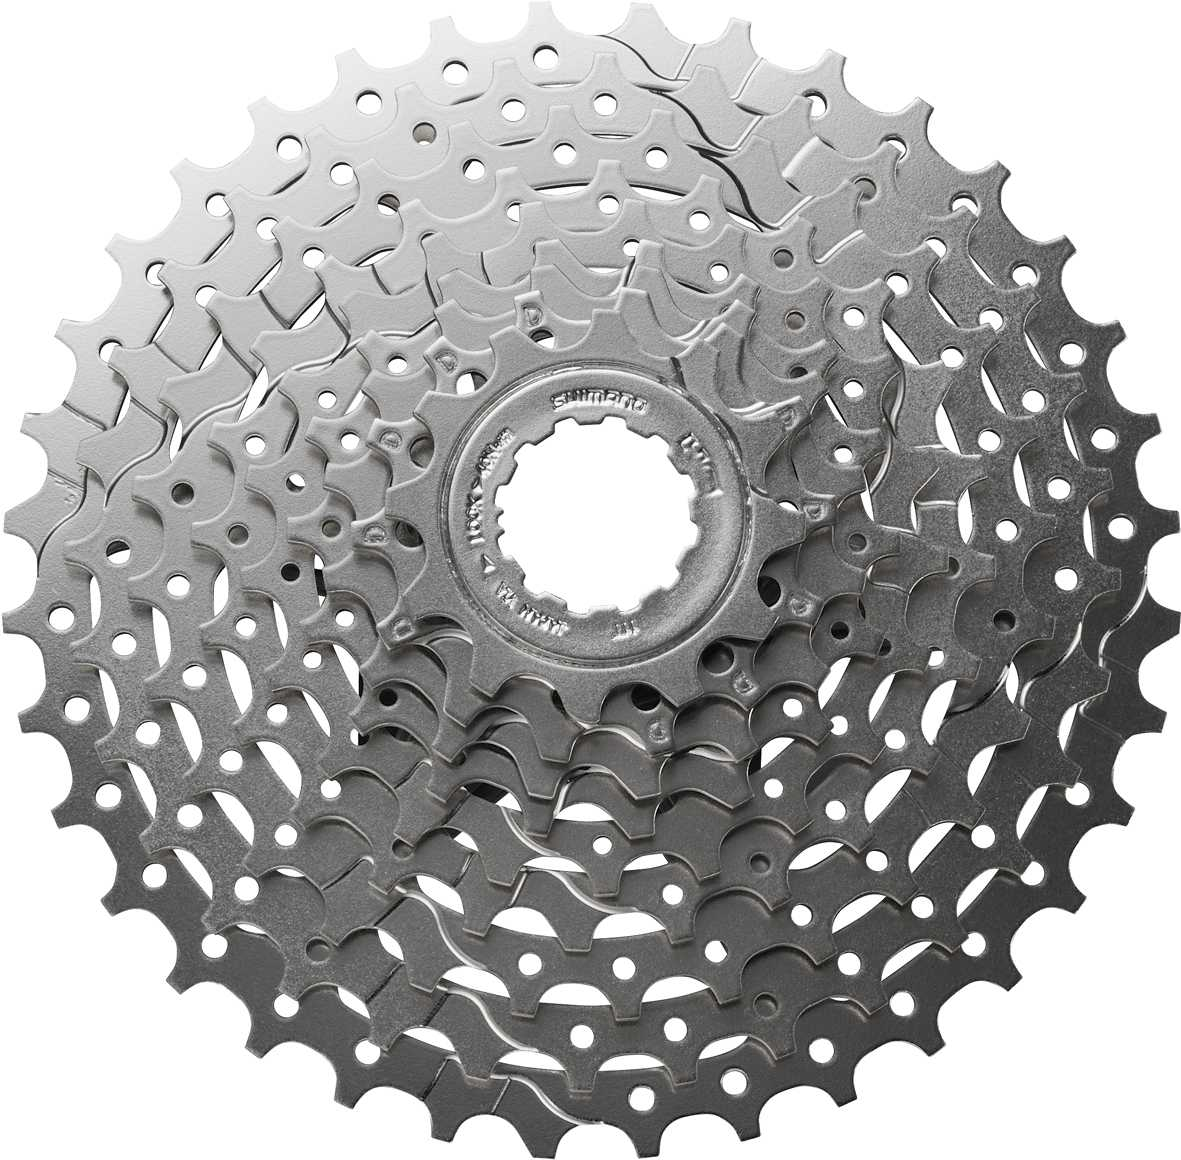 Shimano Alivio HG400  9 Speed 11-32 Tooth Cassette